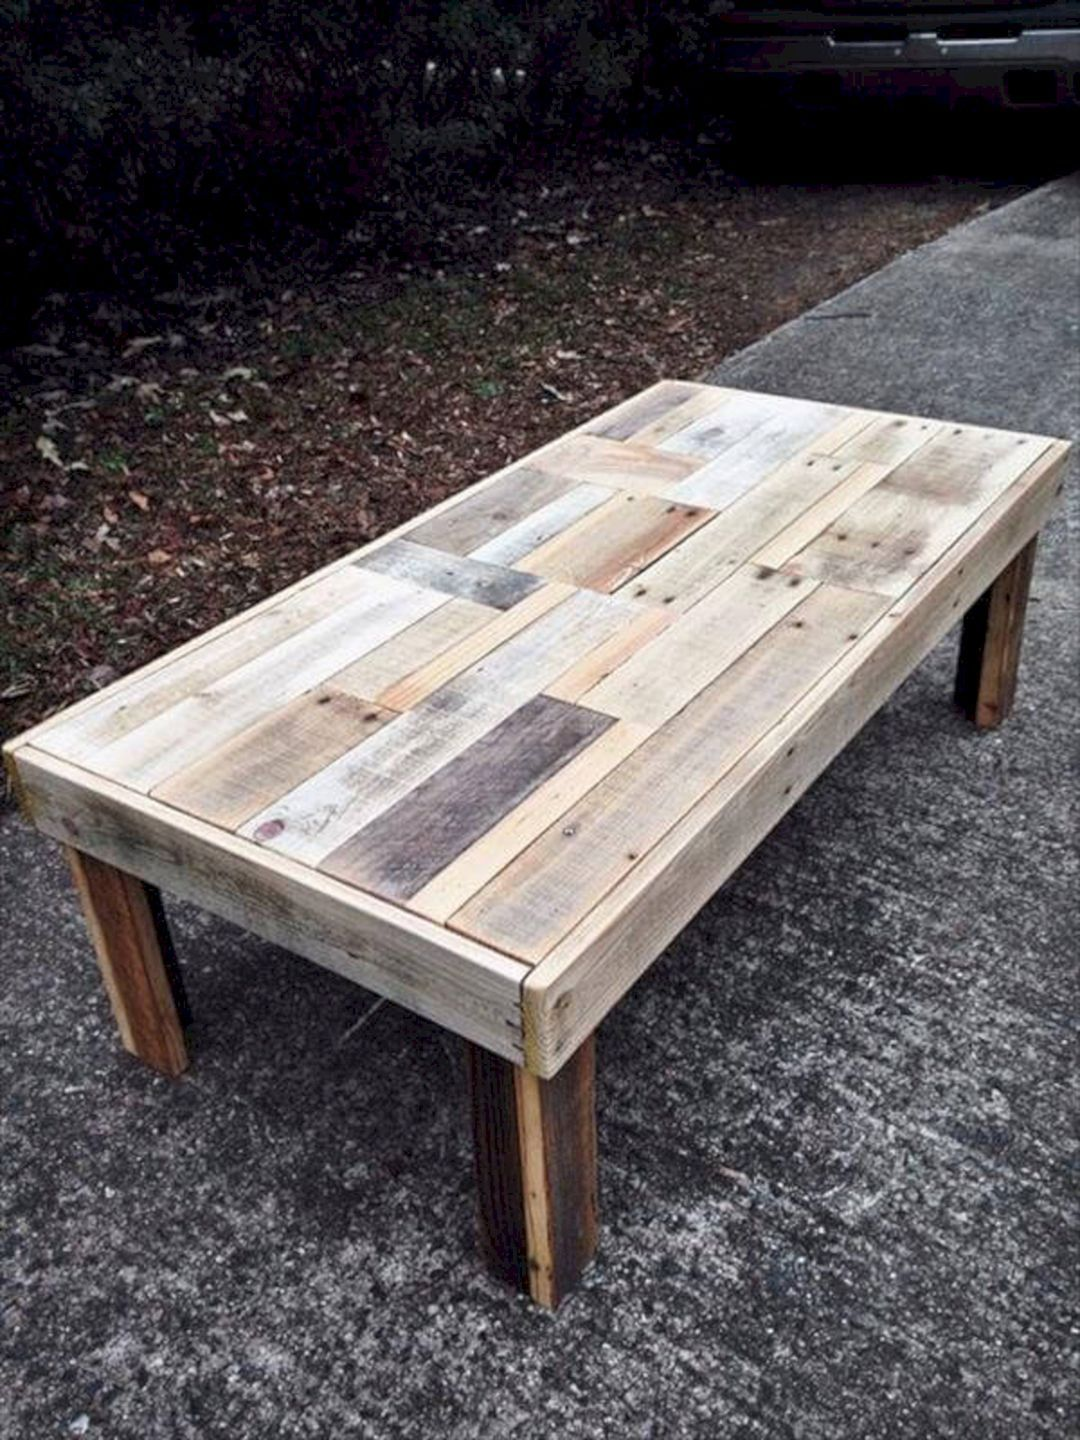 pin by linda ross on pallet tables plans in 2019 diy palletdiy pallet furniture, furniture projects, rustic furniture, furniture design, diy pallet projects